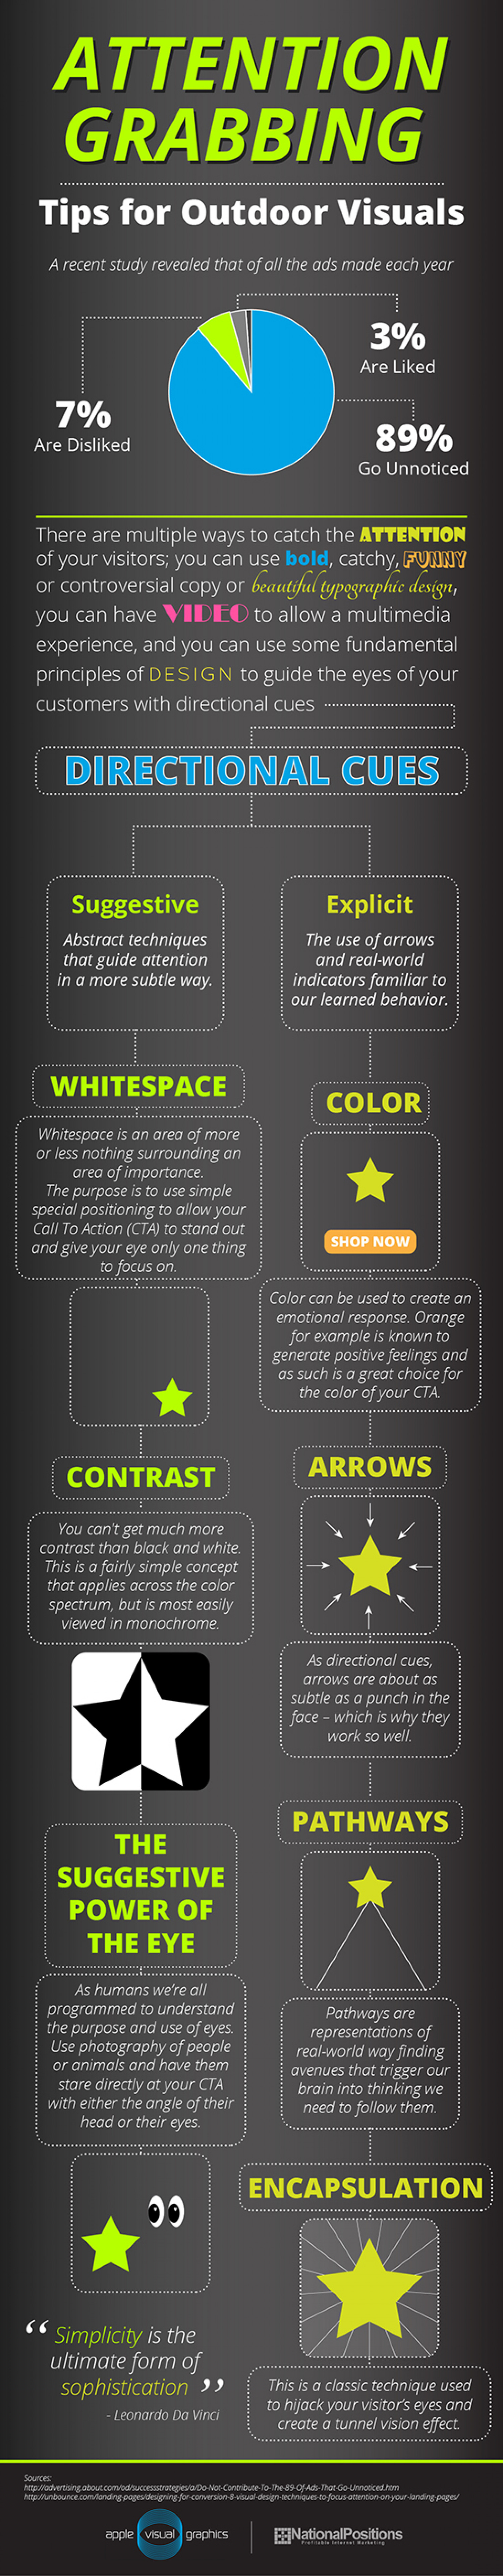 Tips for Outdoor Visuals Infographic